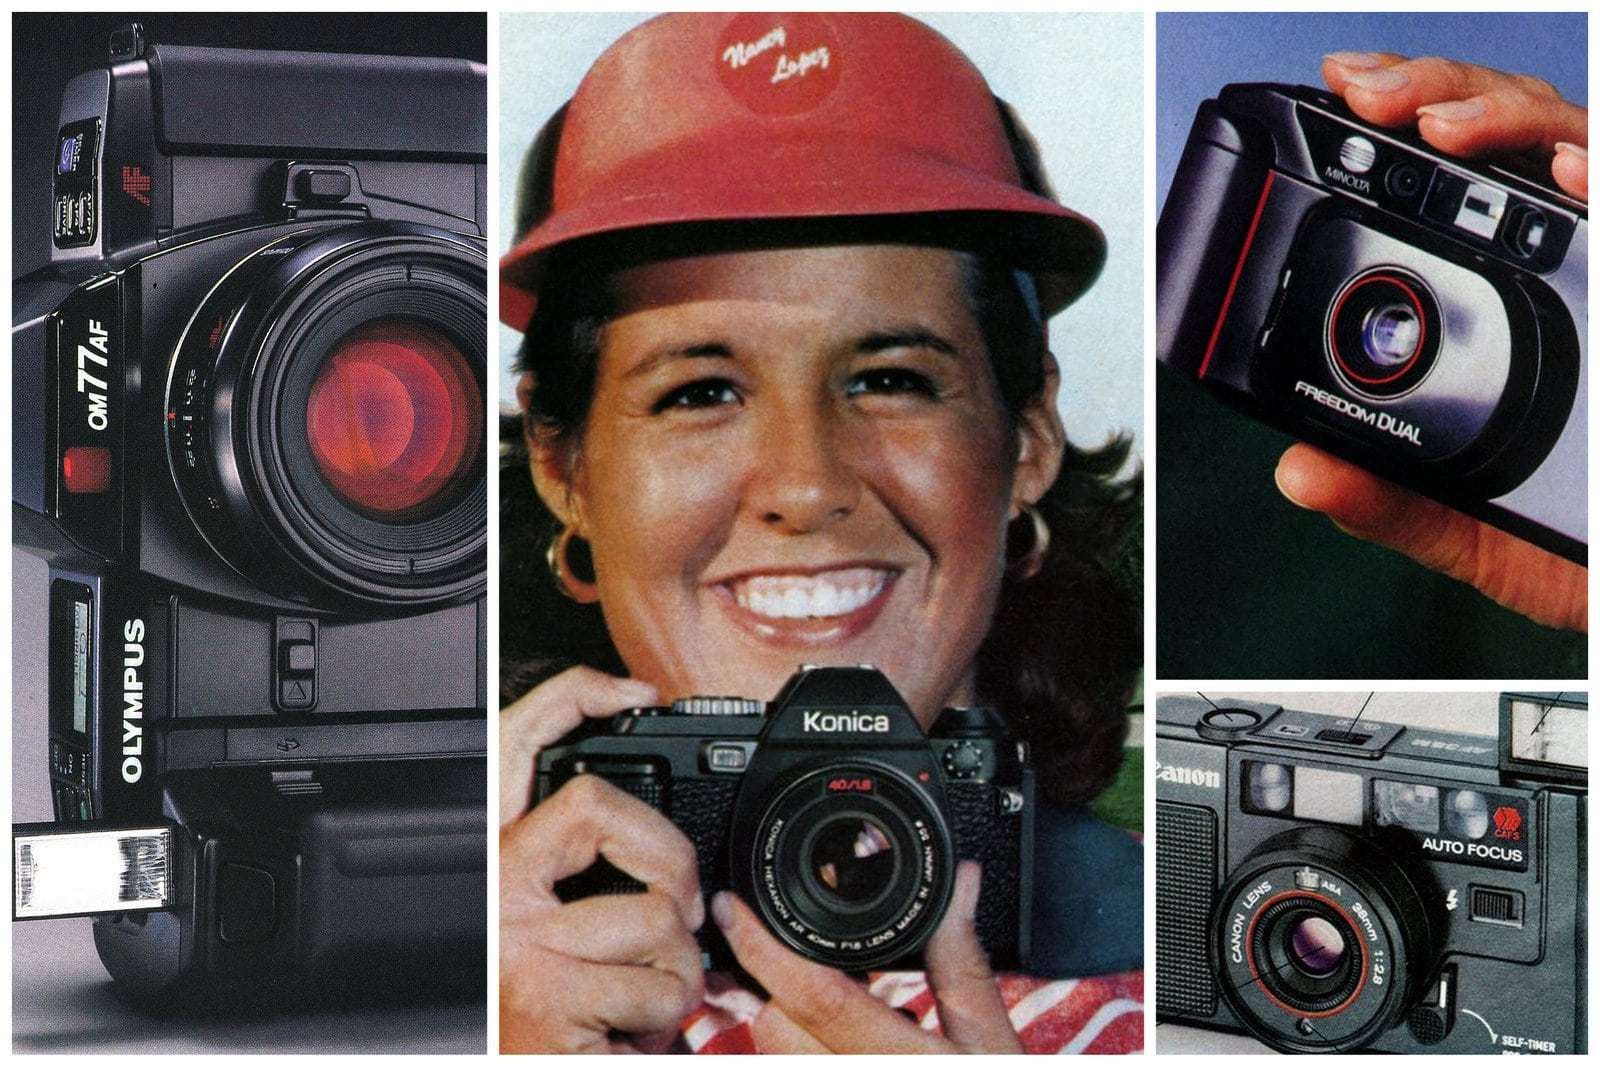 Popular point-and-shoot 35mm cameras like these from the '80s revolutionized amateur photography